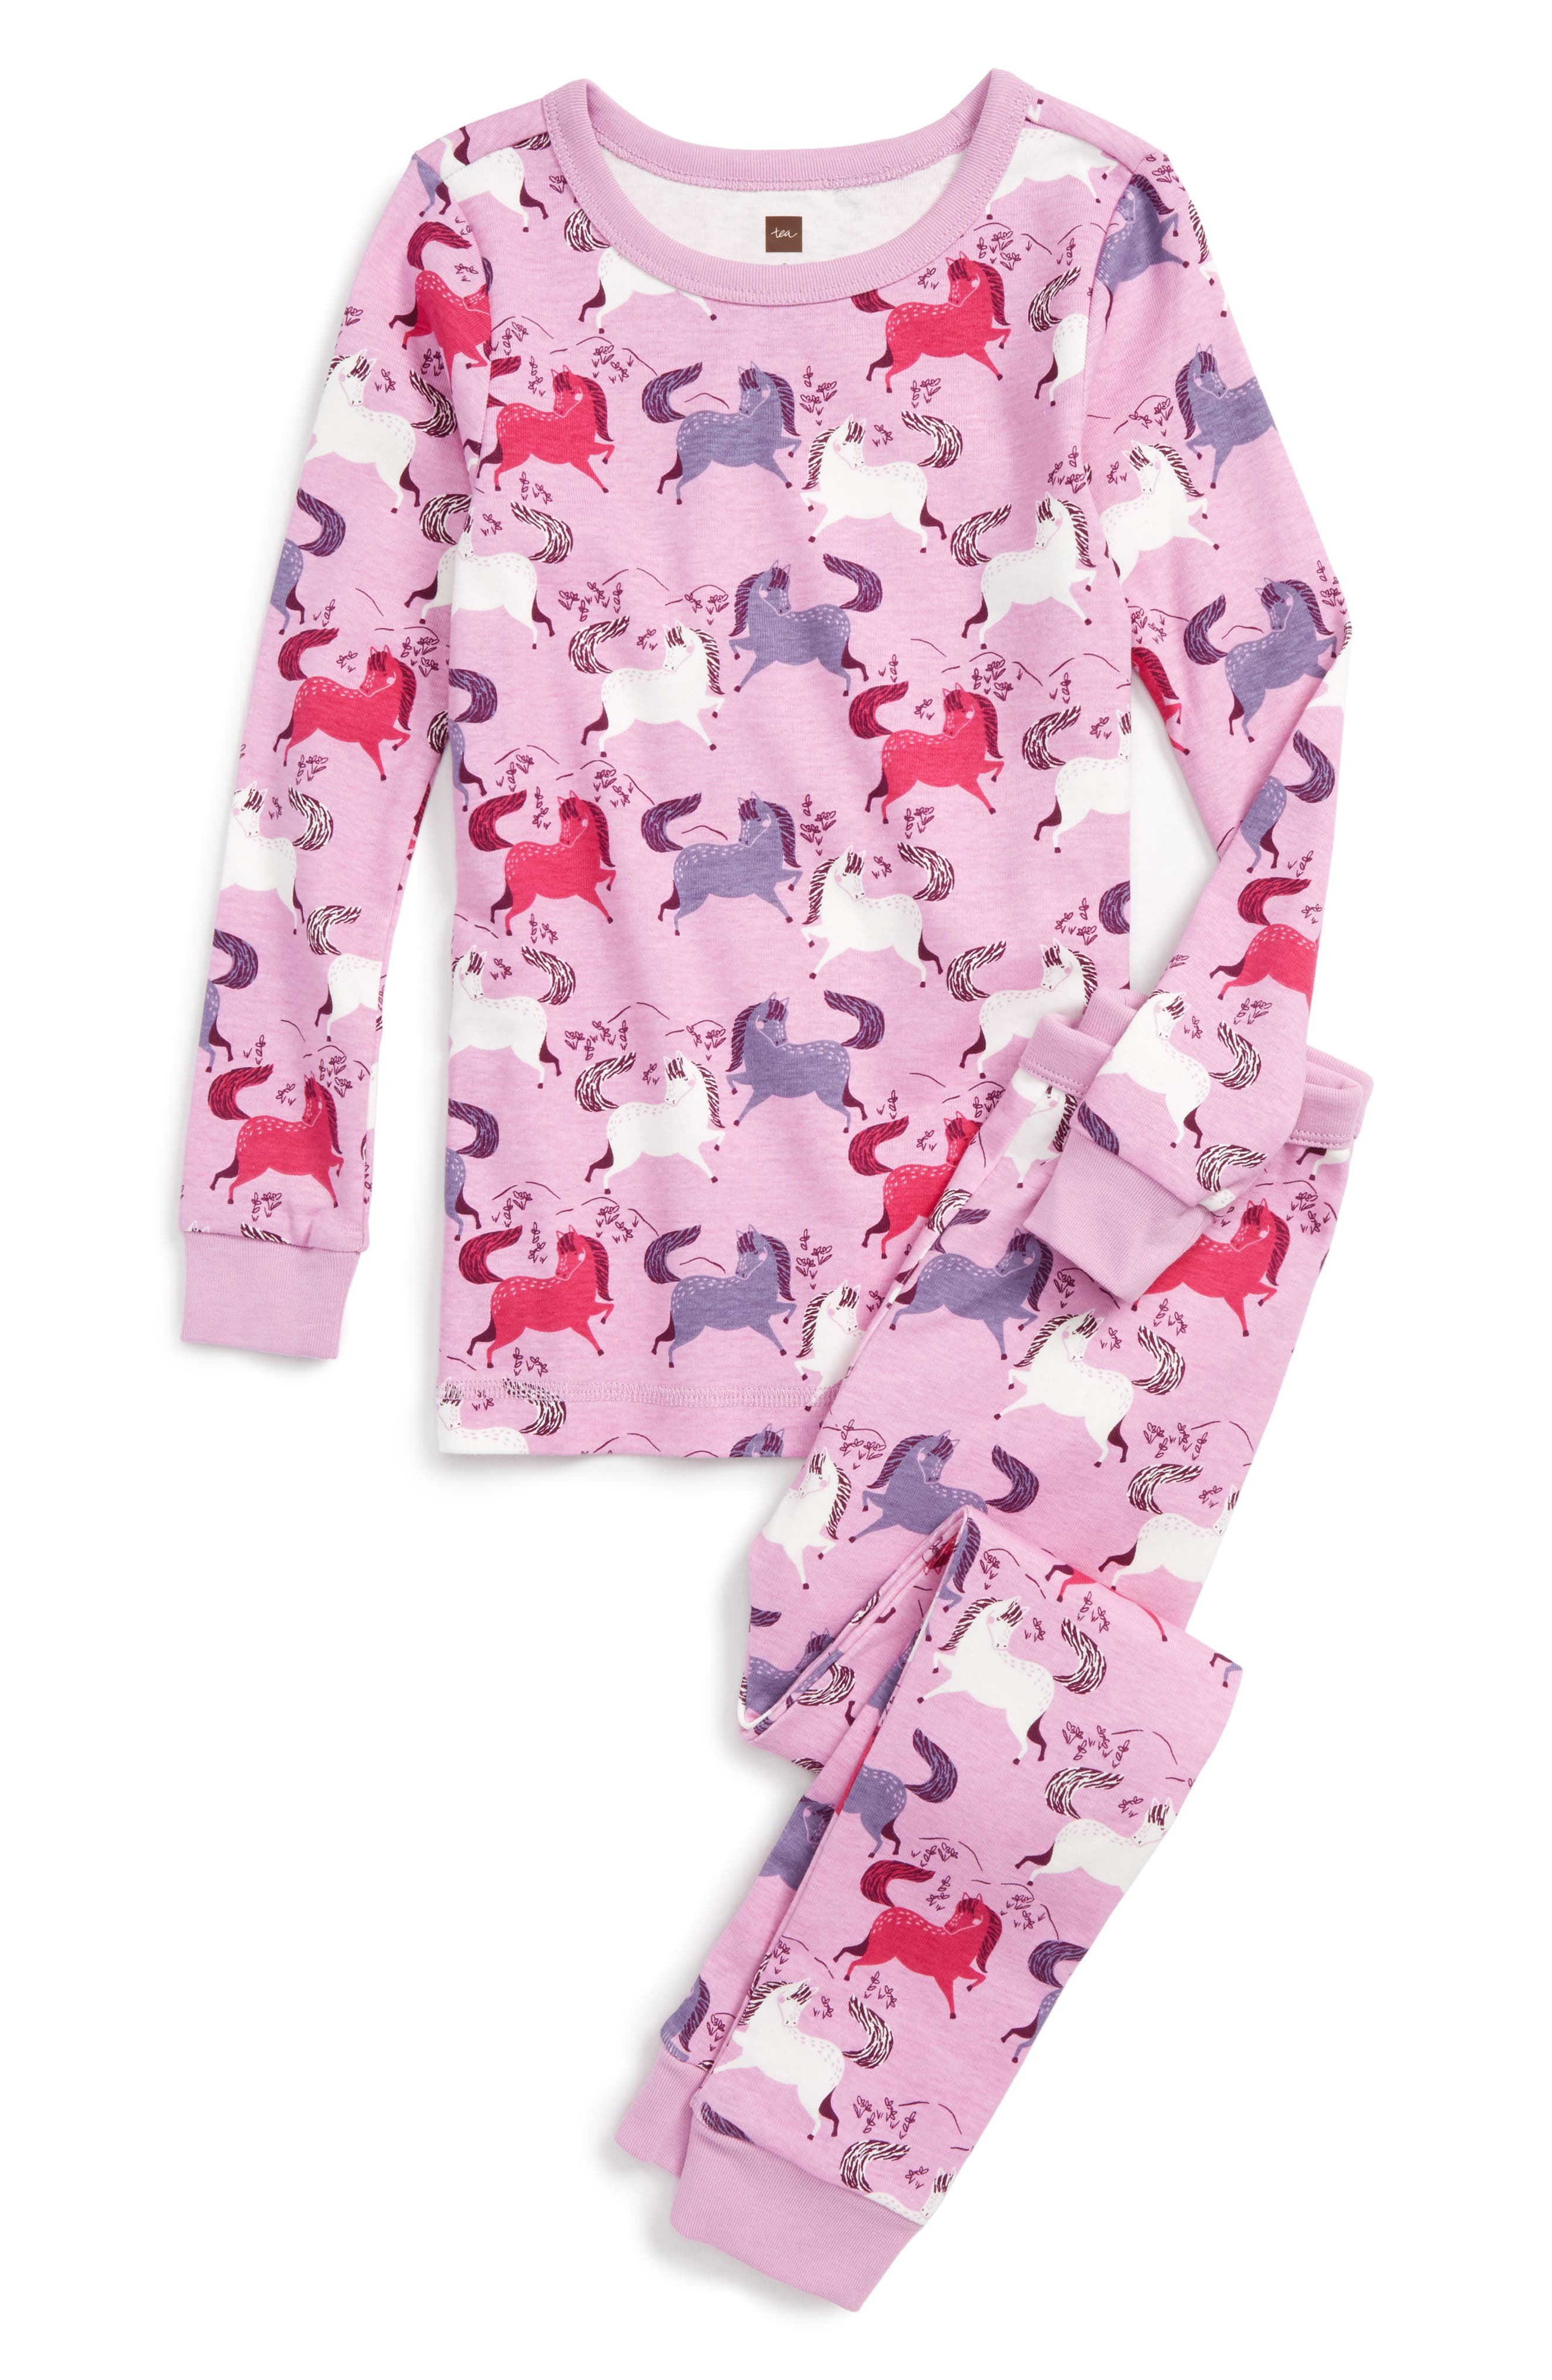 Shetland Fitted Two-Piece Pajamas,                             Main thumbnail 1, color,                             535